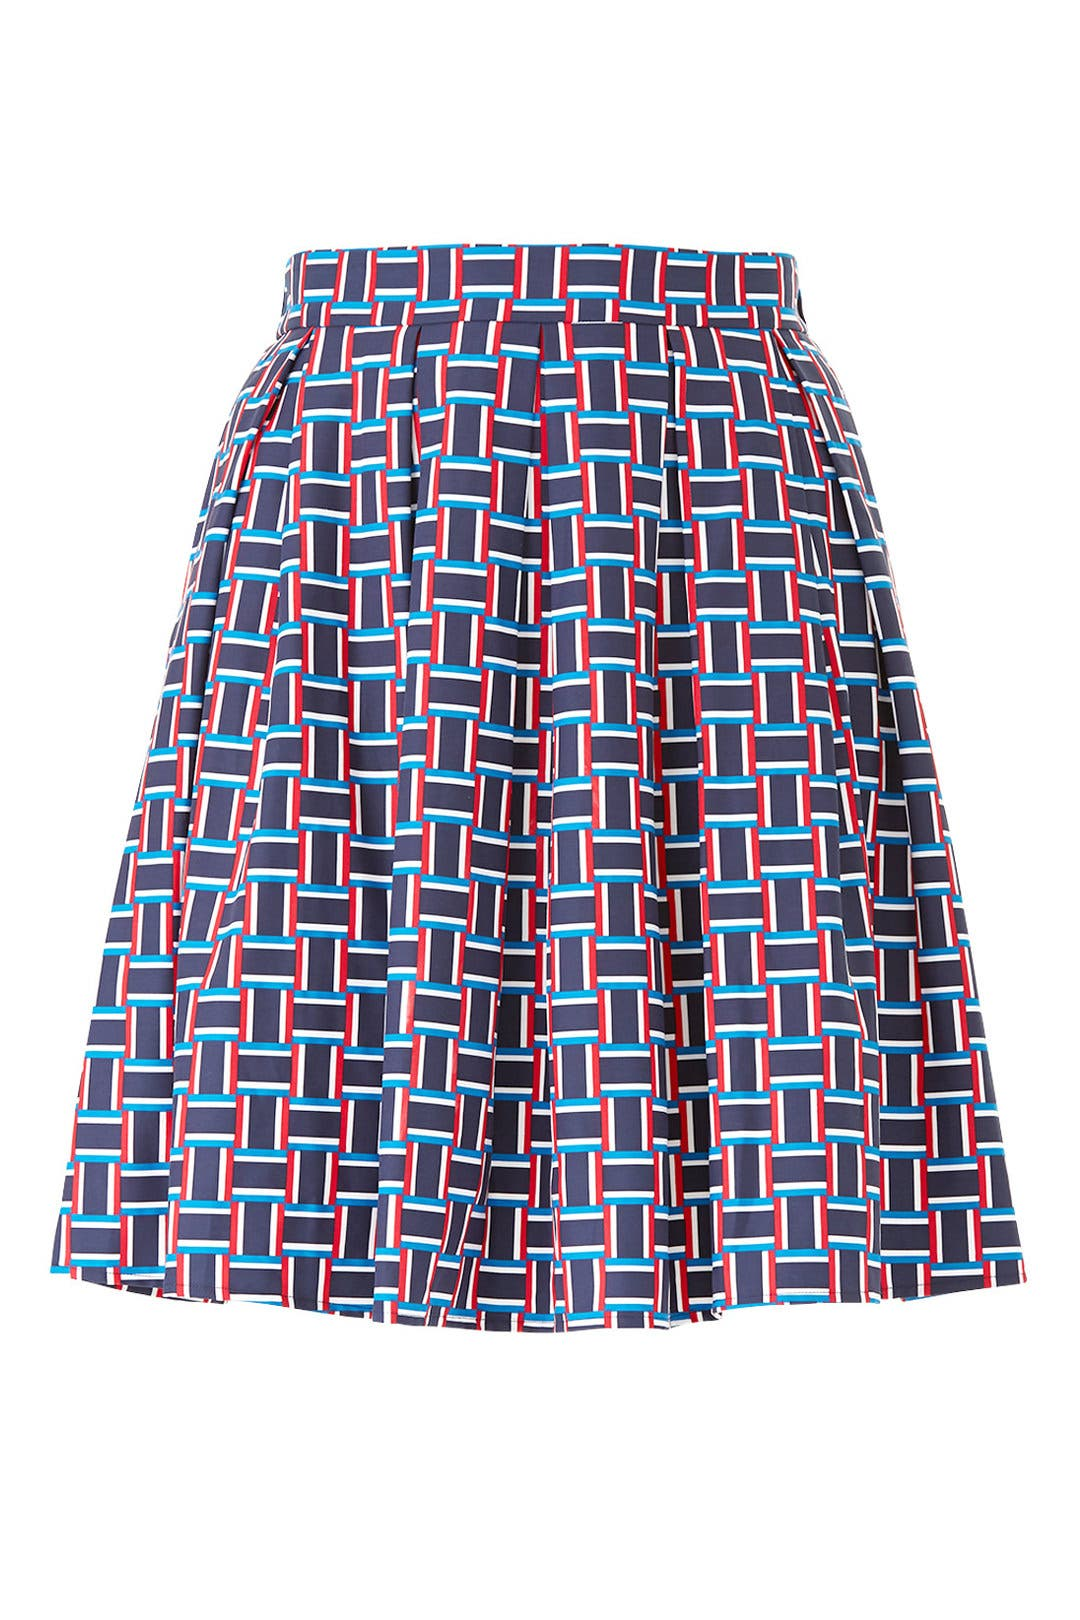 c0d8f9d6a3fc6 Geo Pleated Skirt by Draper James X ELOQUII for  30